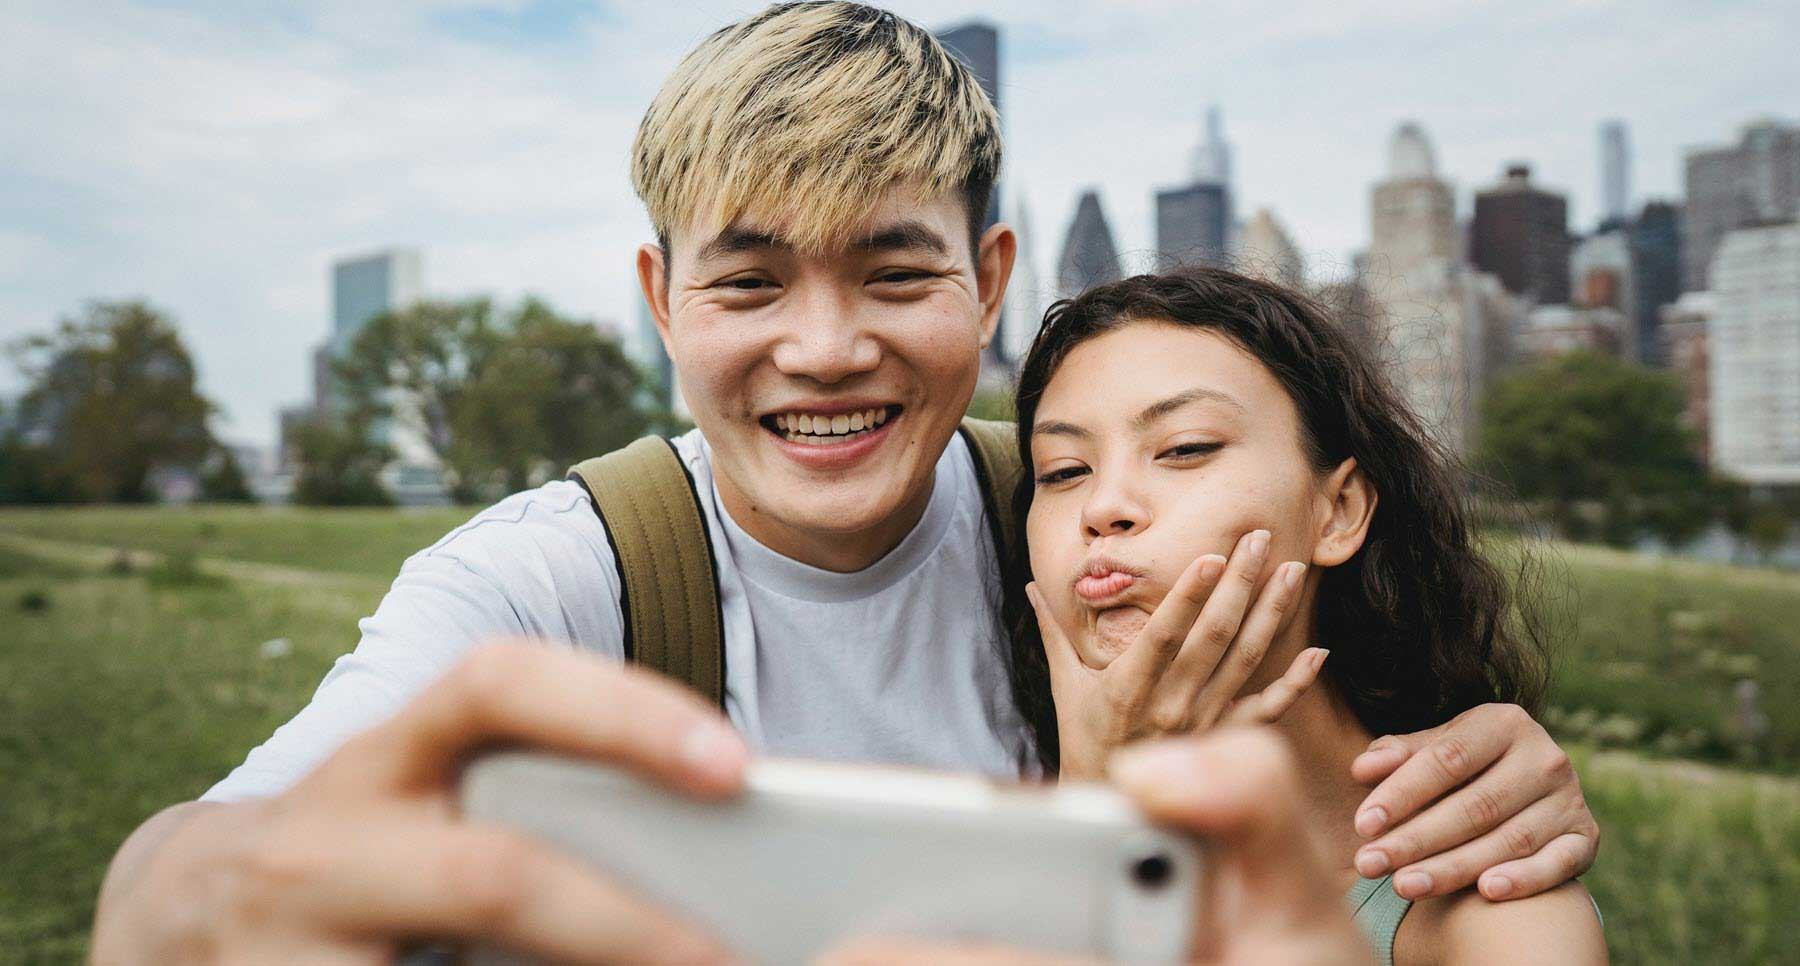 Teen boy and girl taking a selfie 7 reasons to be just friends TheHopeLine